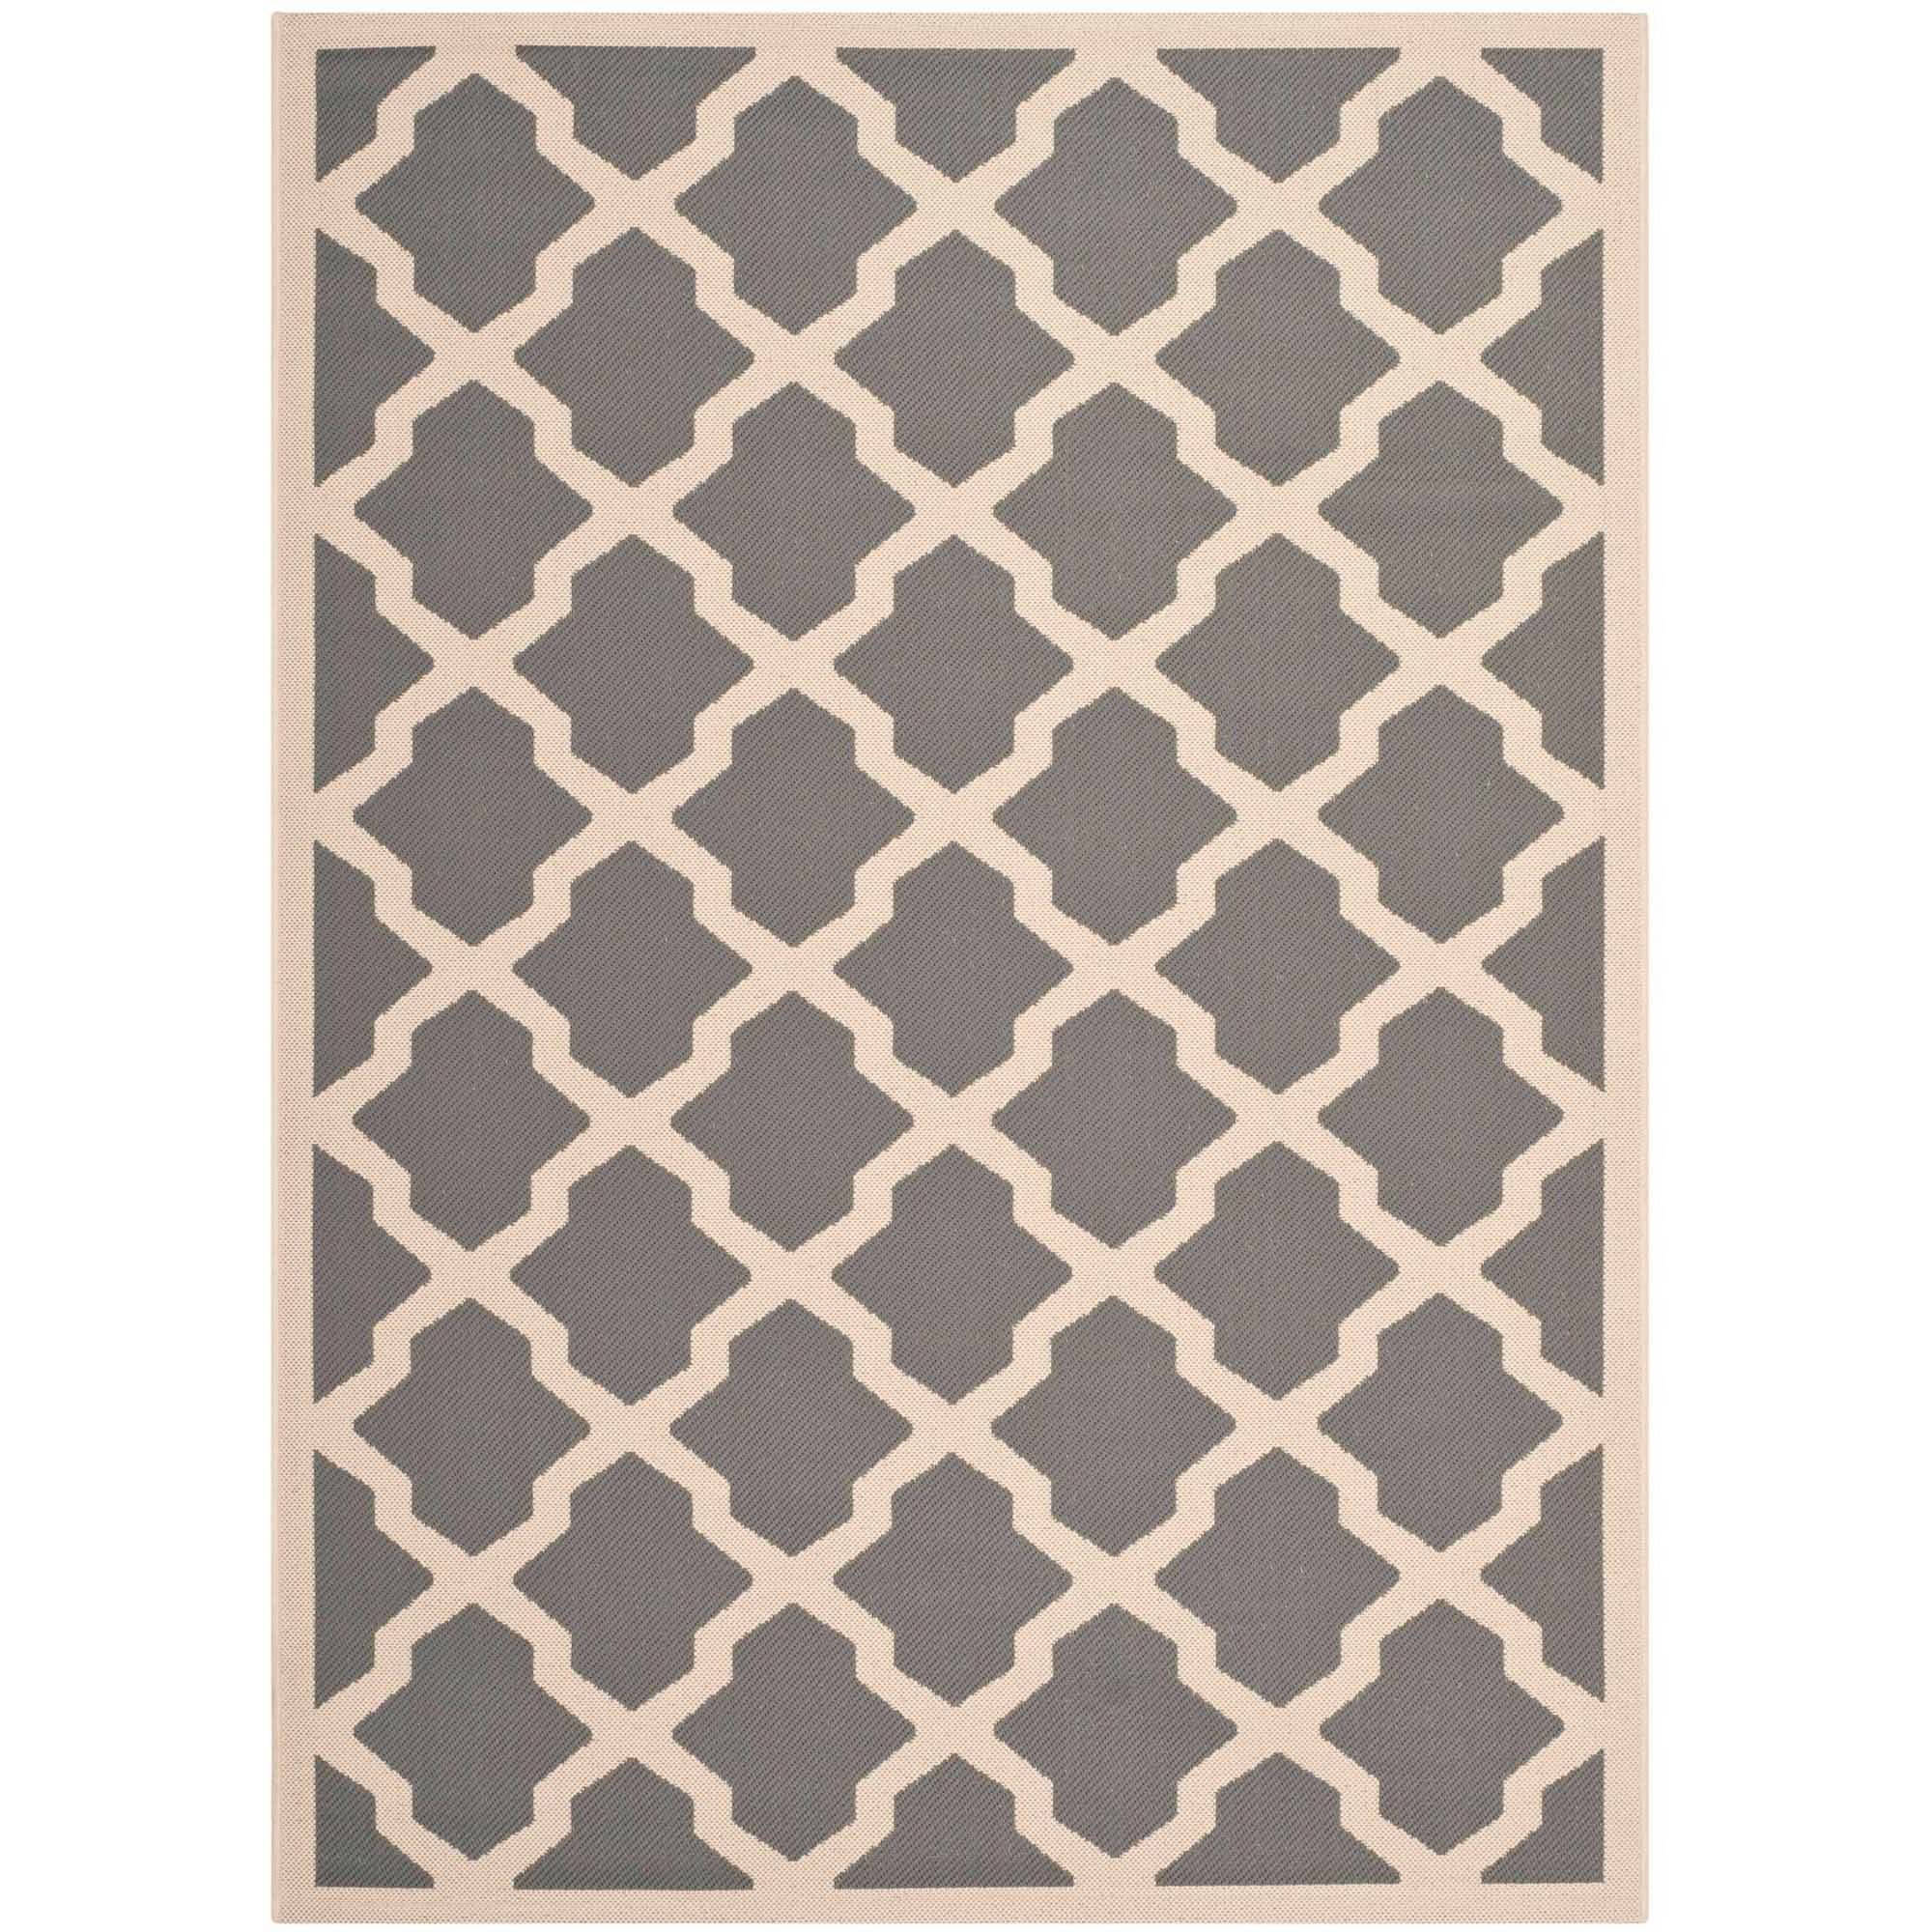 Safavieh Courtyard Amber Indoor/Outdoor Area Rug or Runner